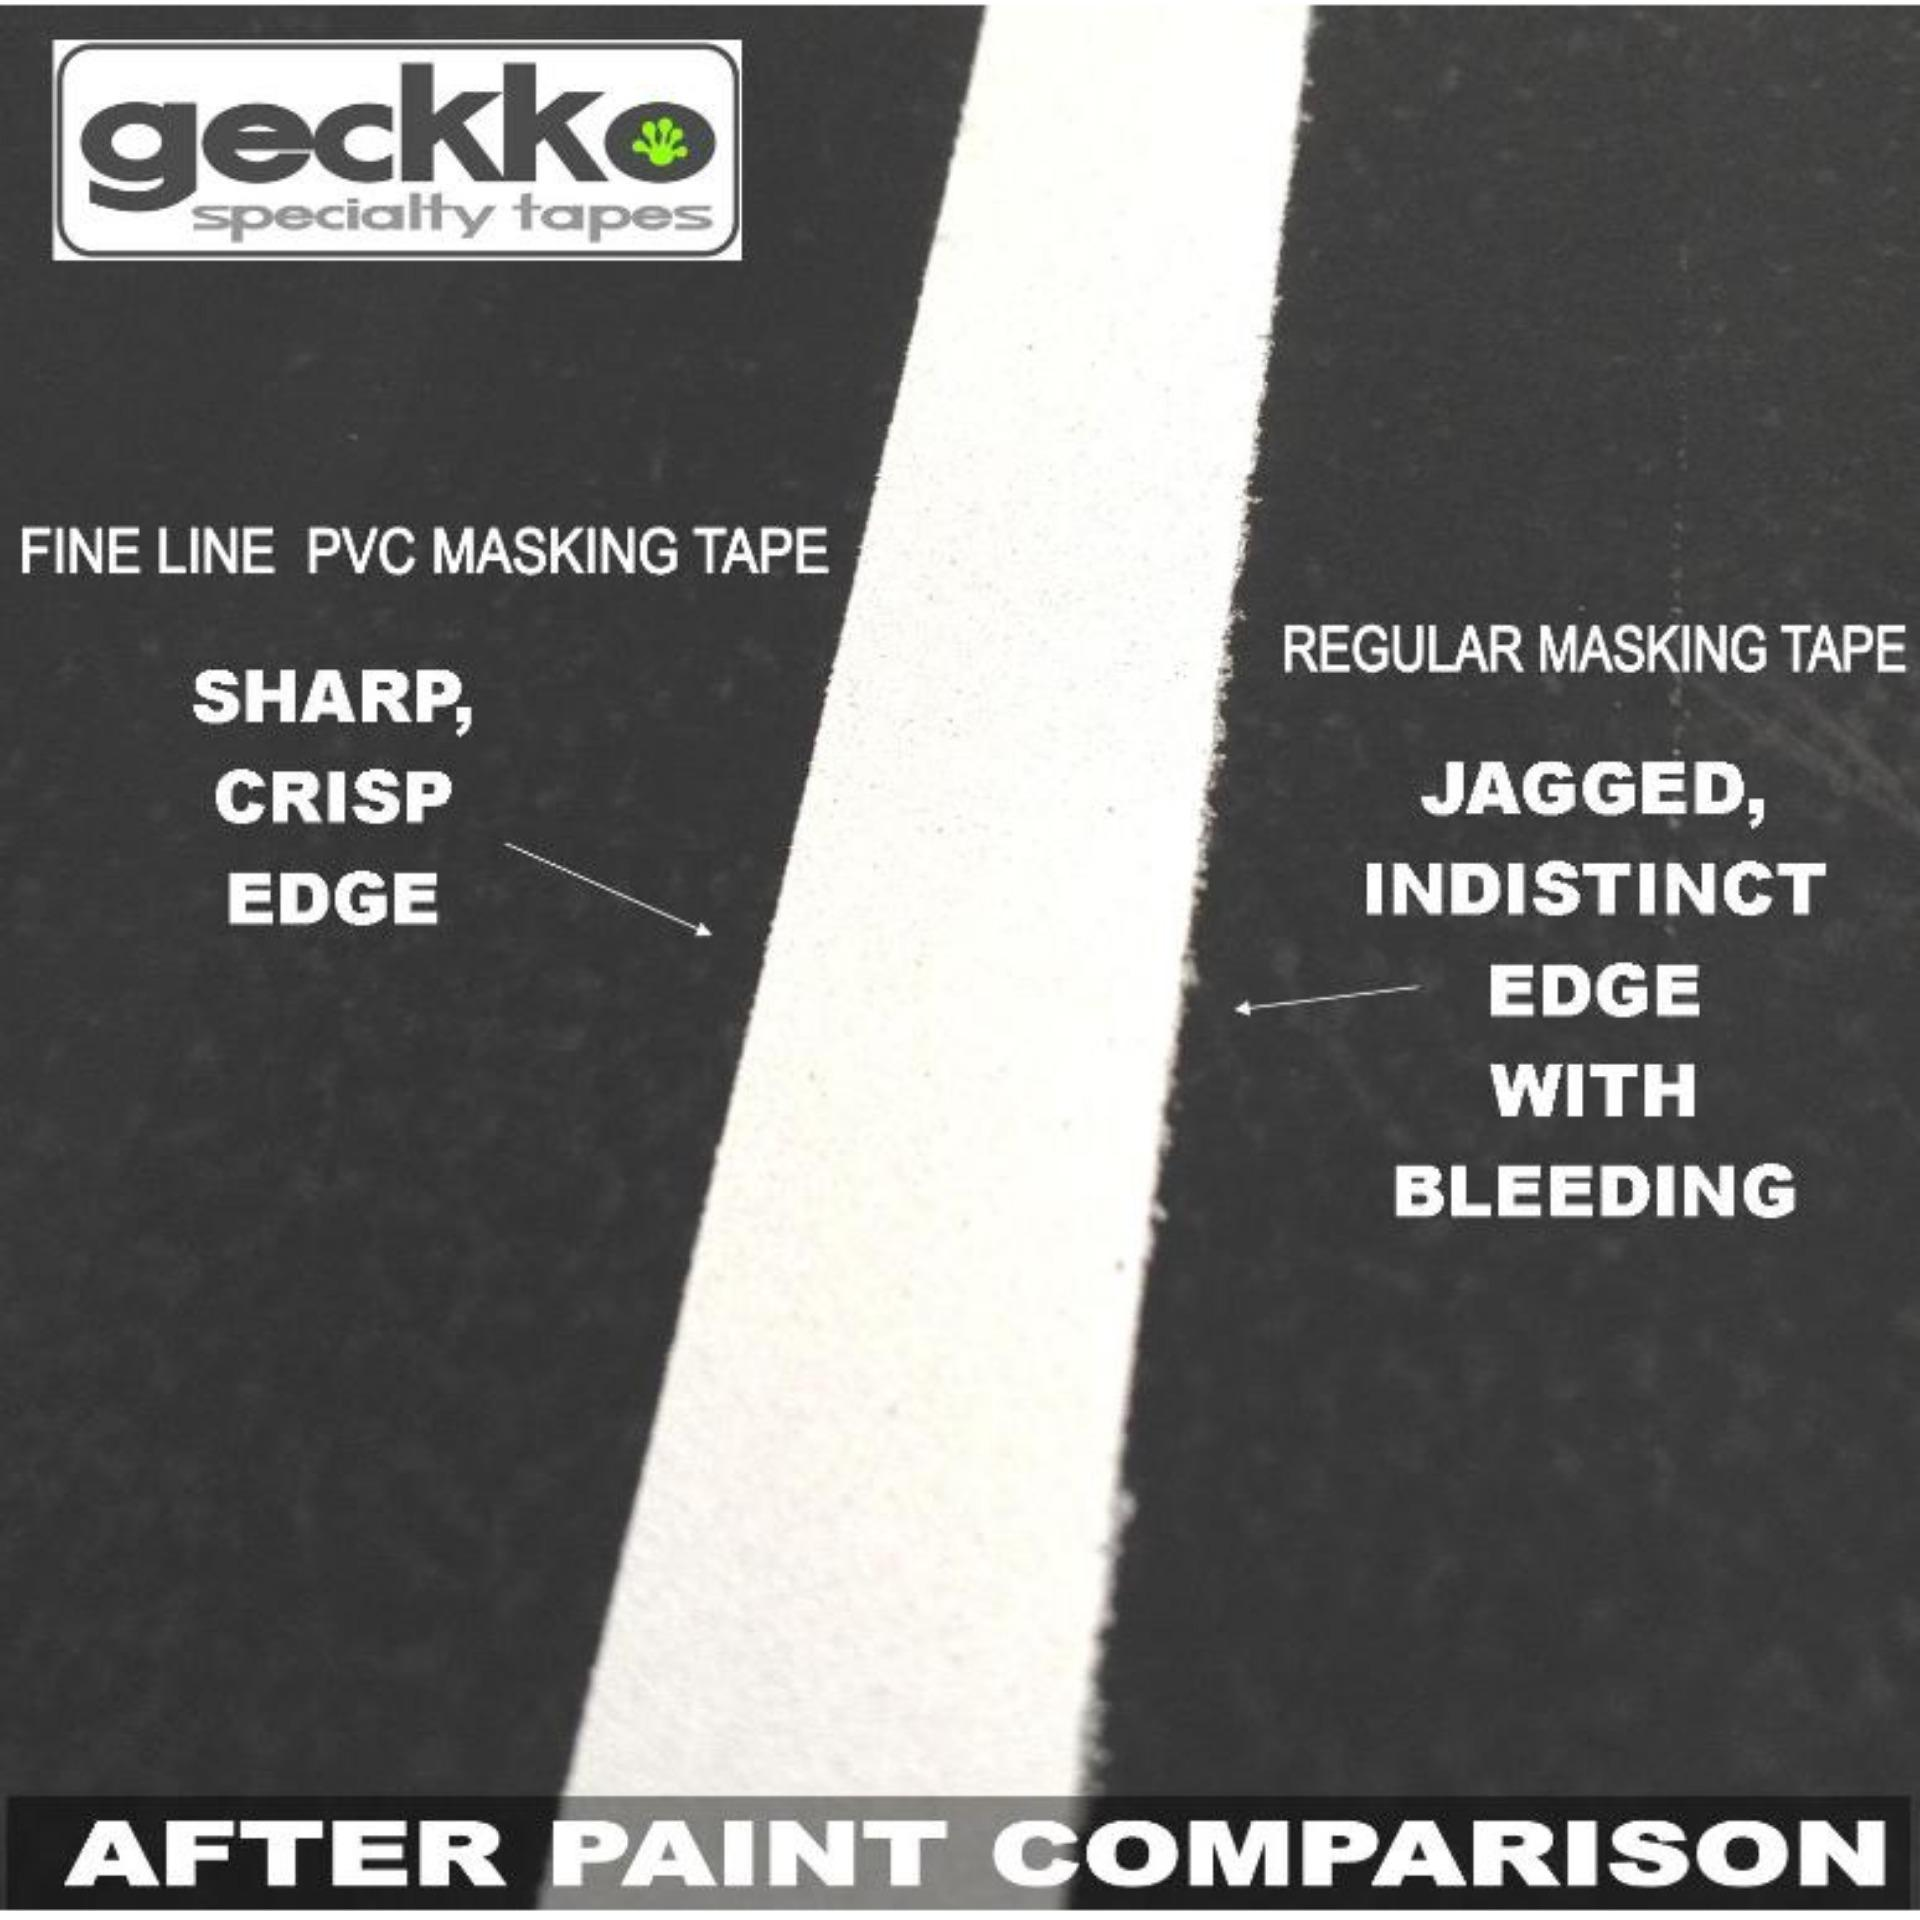 ... FINE LINE PVC MASKING TAPE by Geckko Specialty Tapes PinstripingPin Stripe Graphics Car Decal Car Art ...